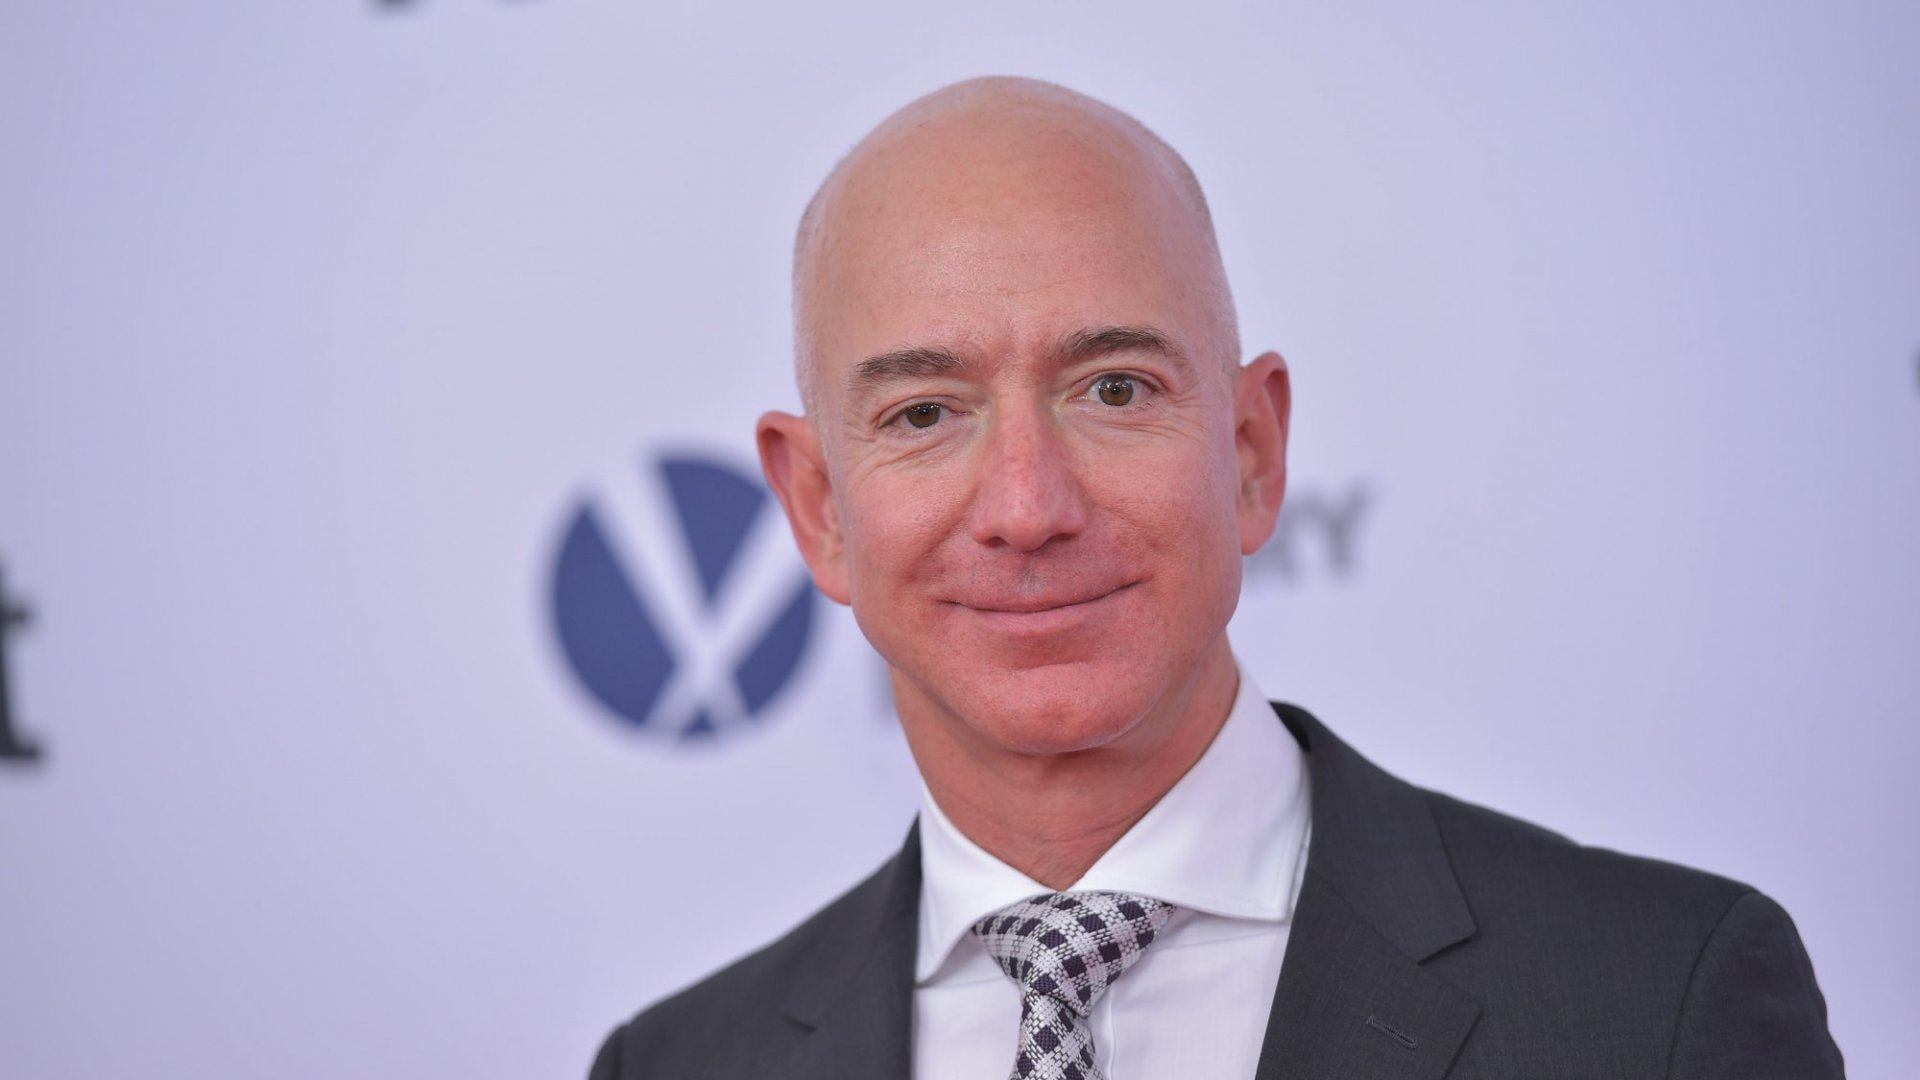 What That Weird Super Bowl Commercial Starring Jeff Bezos Really Means